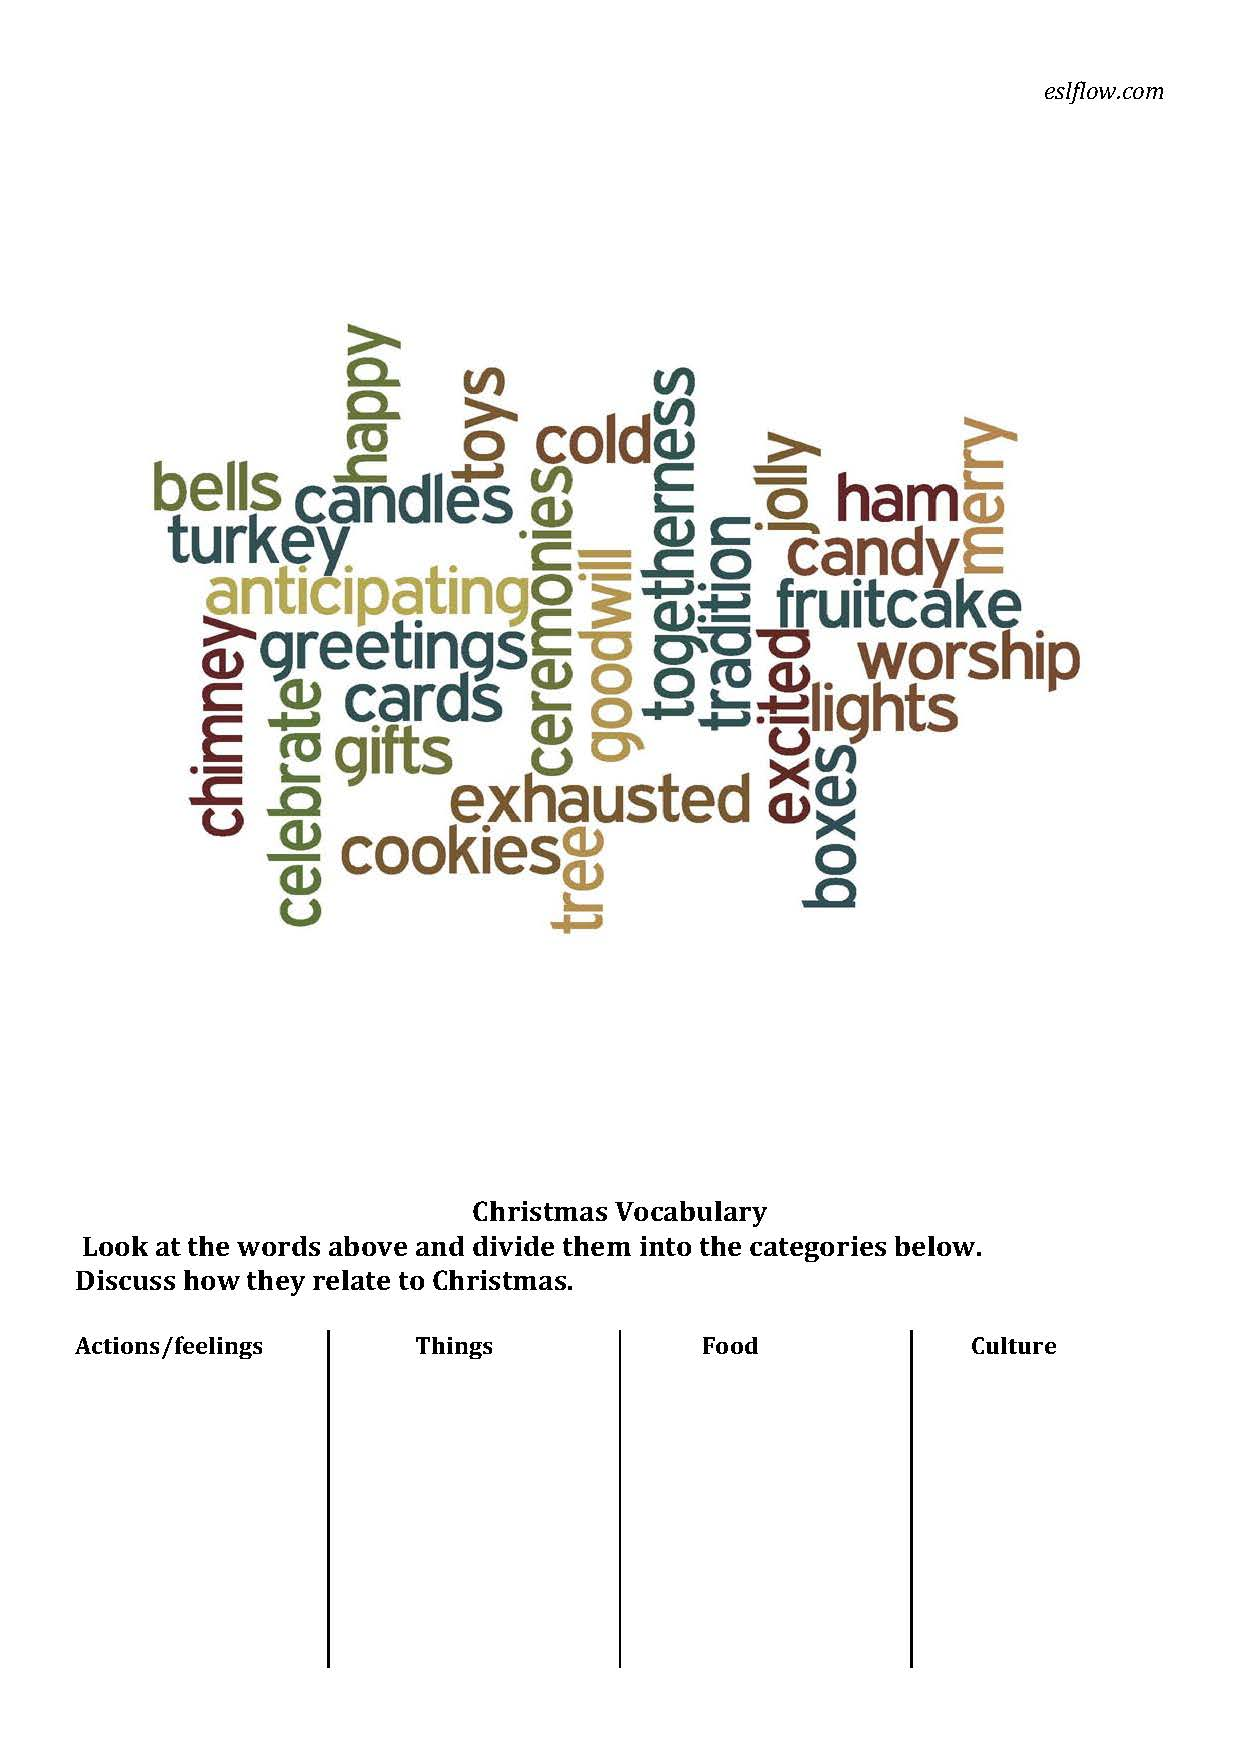 click here for the christmas vocabulary pdf file